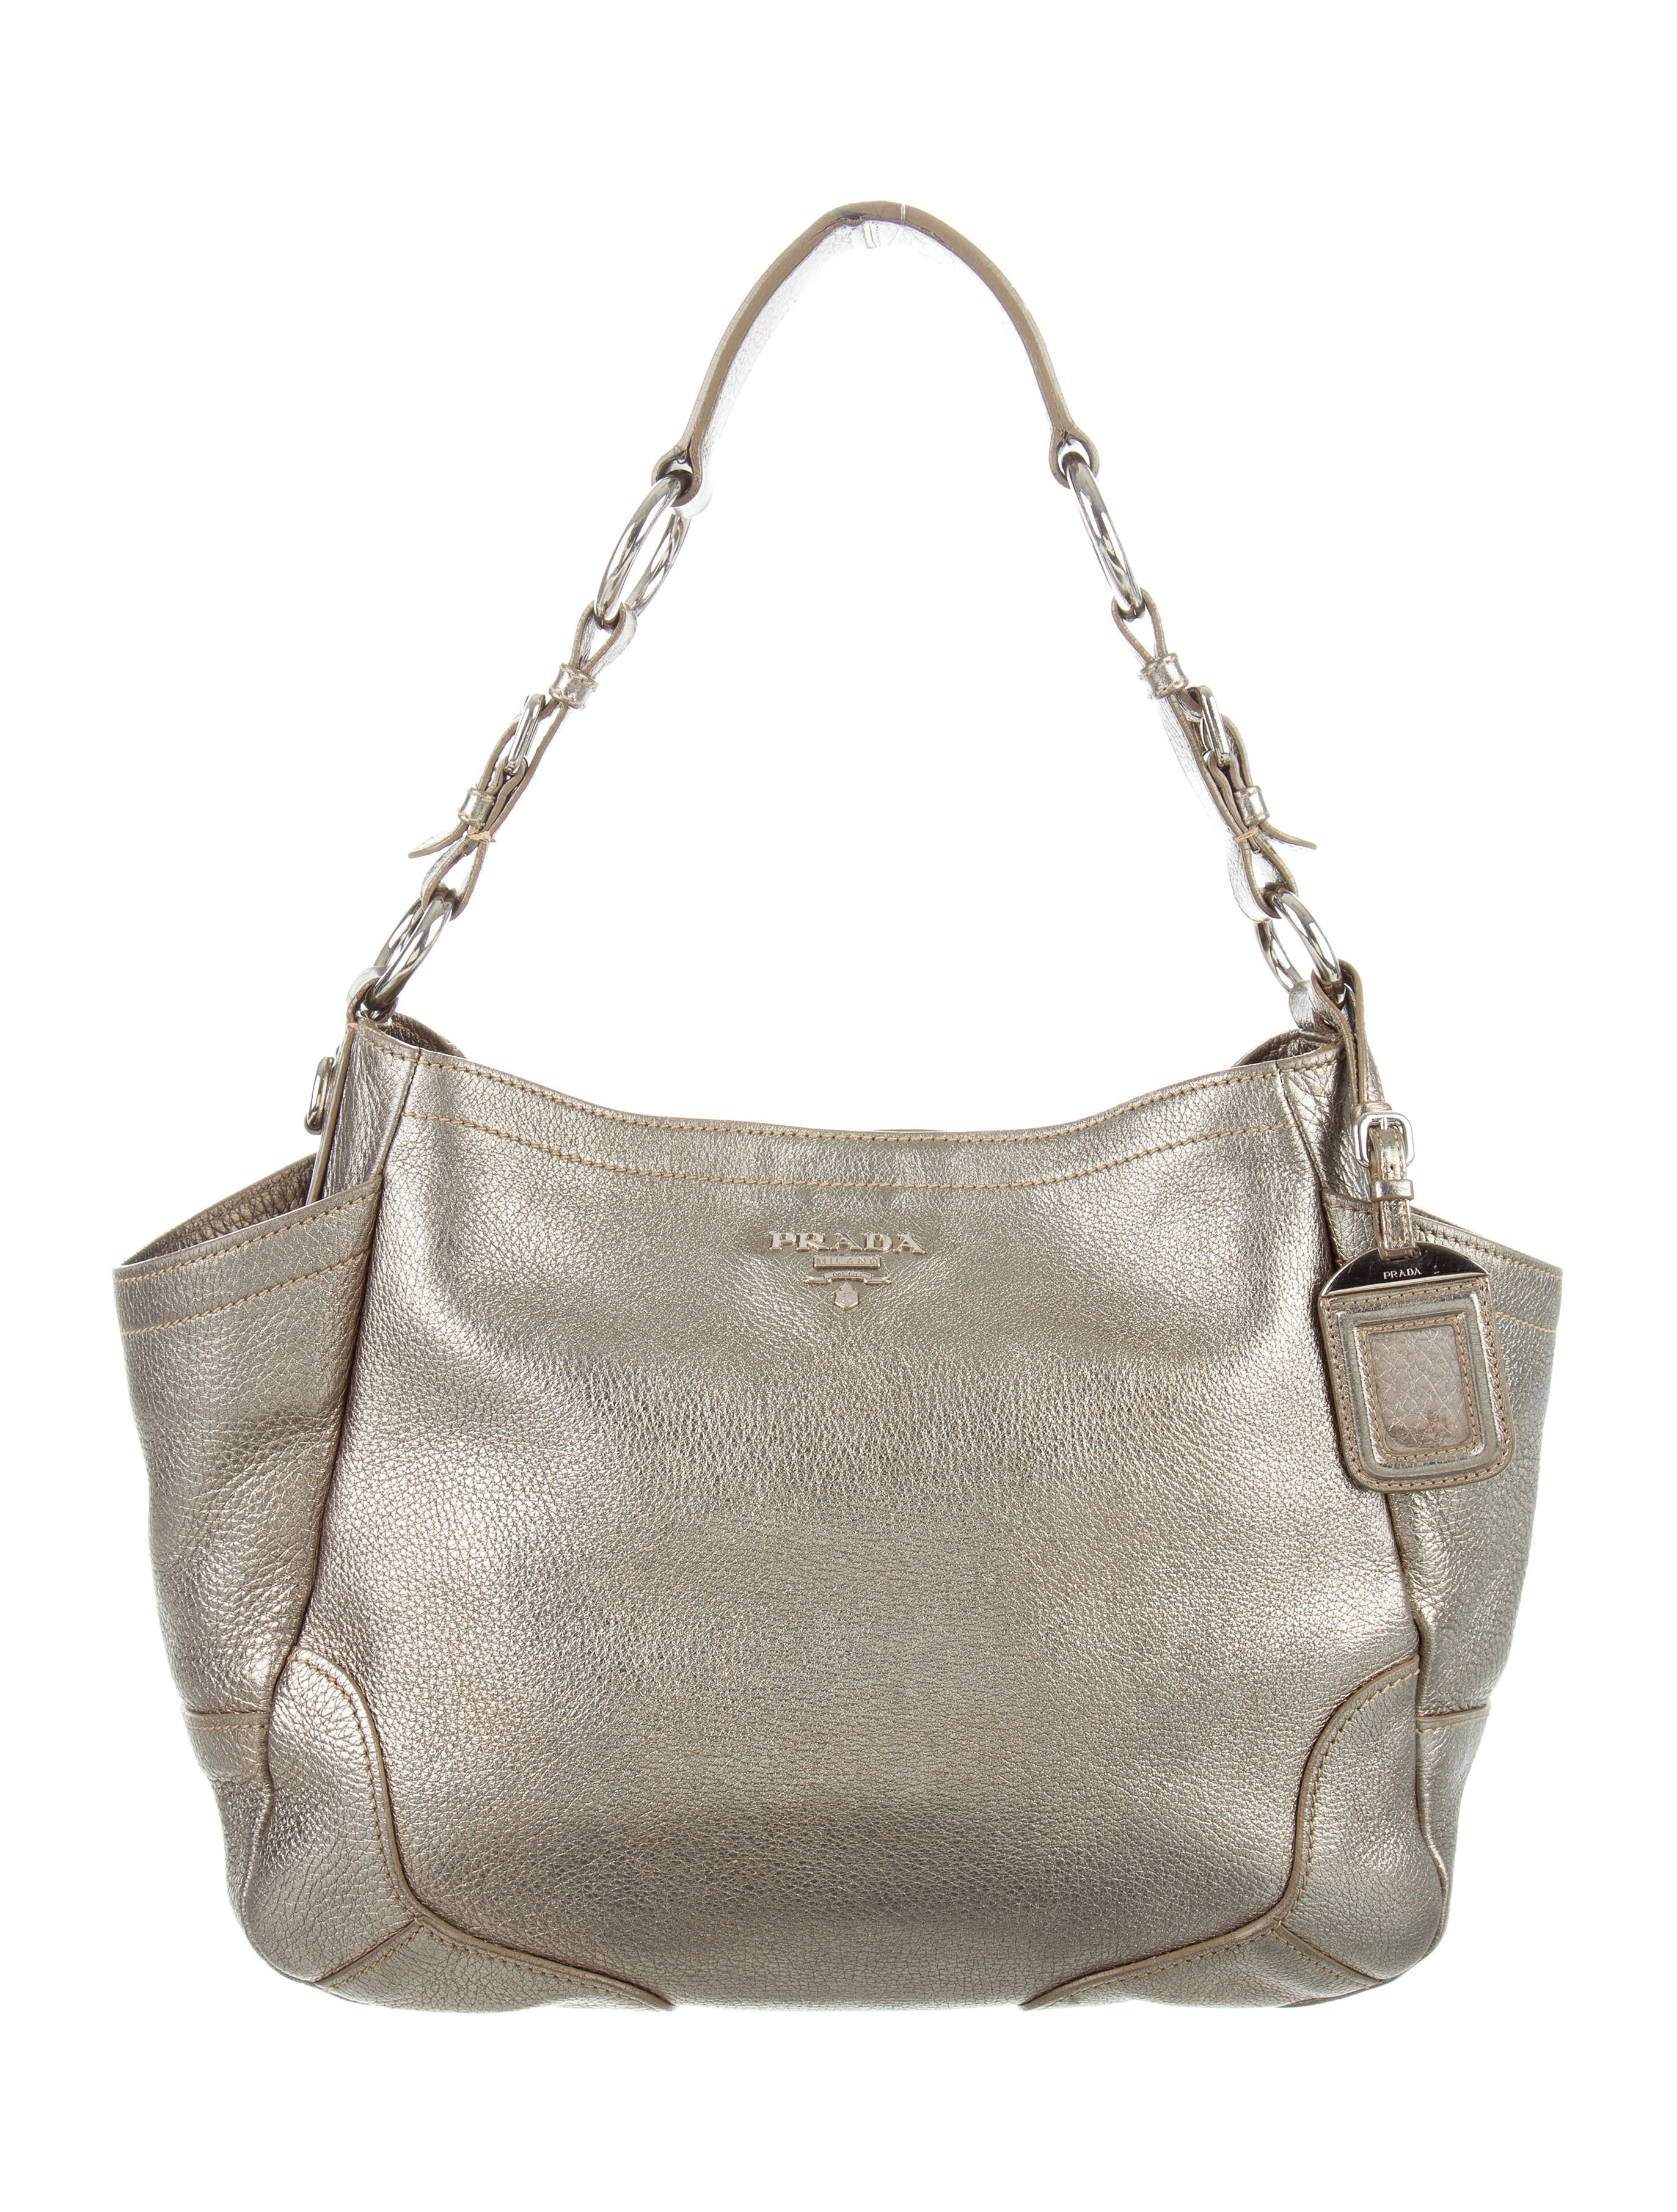 24faec485877e2 Prada Vitello Daino Side Pocket Hobo - Handbags - PRA137072 | The ...